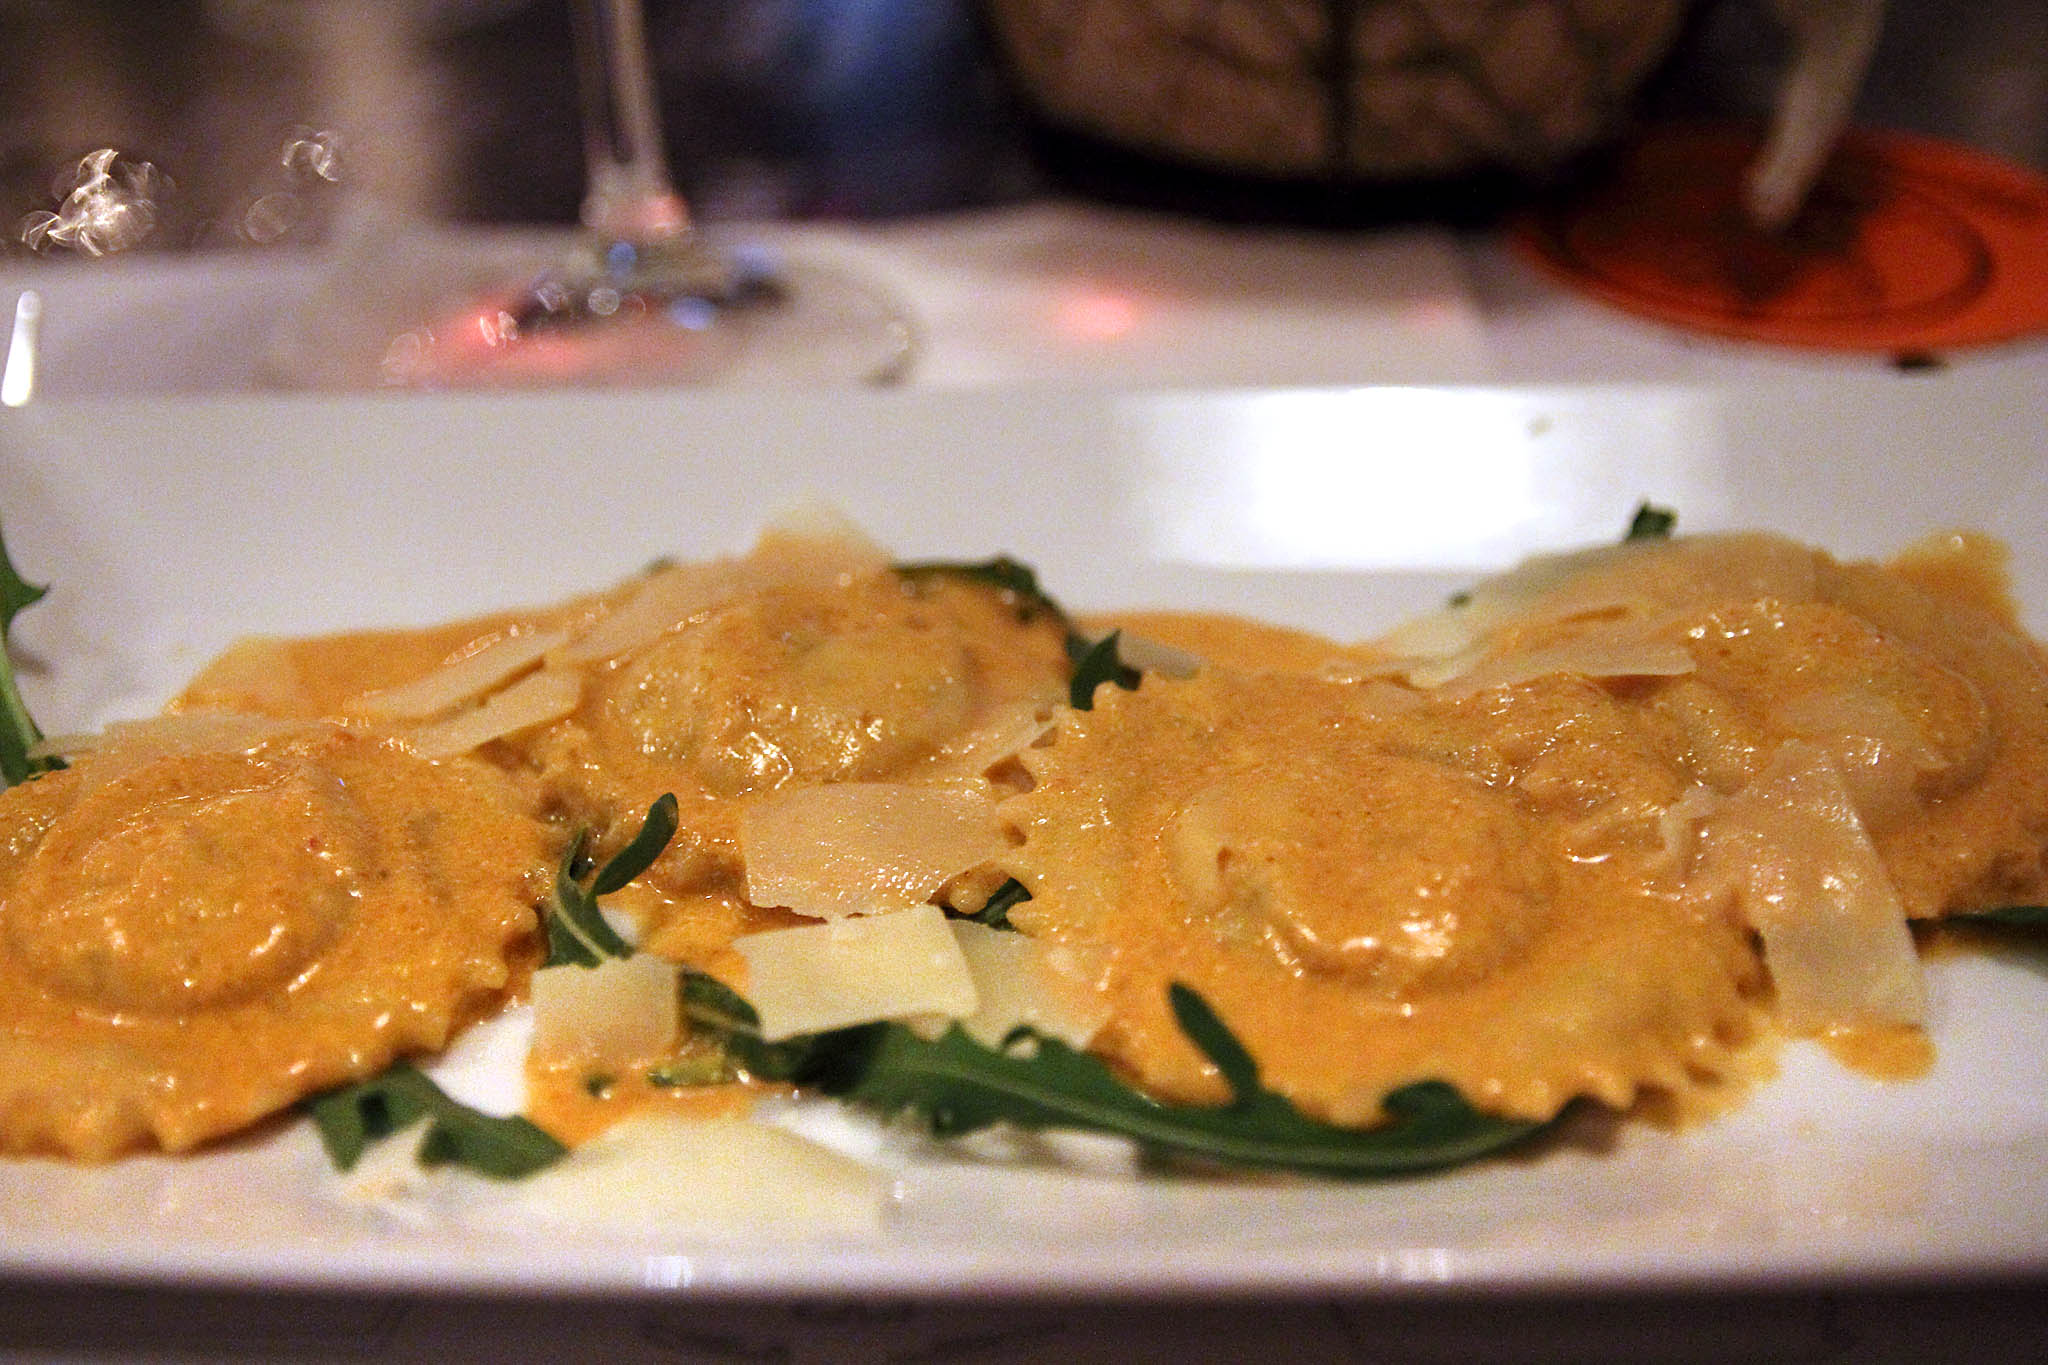 ravioli with lobster in a tomato-cognac sauce